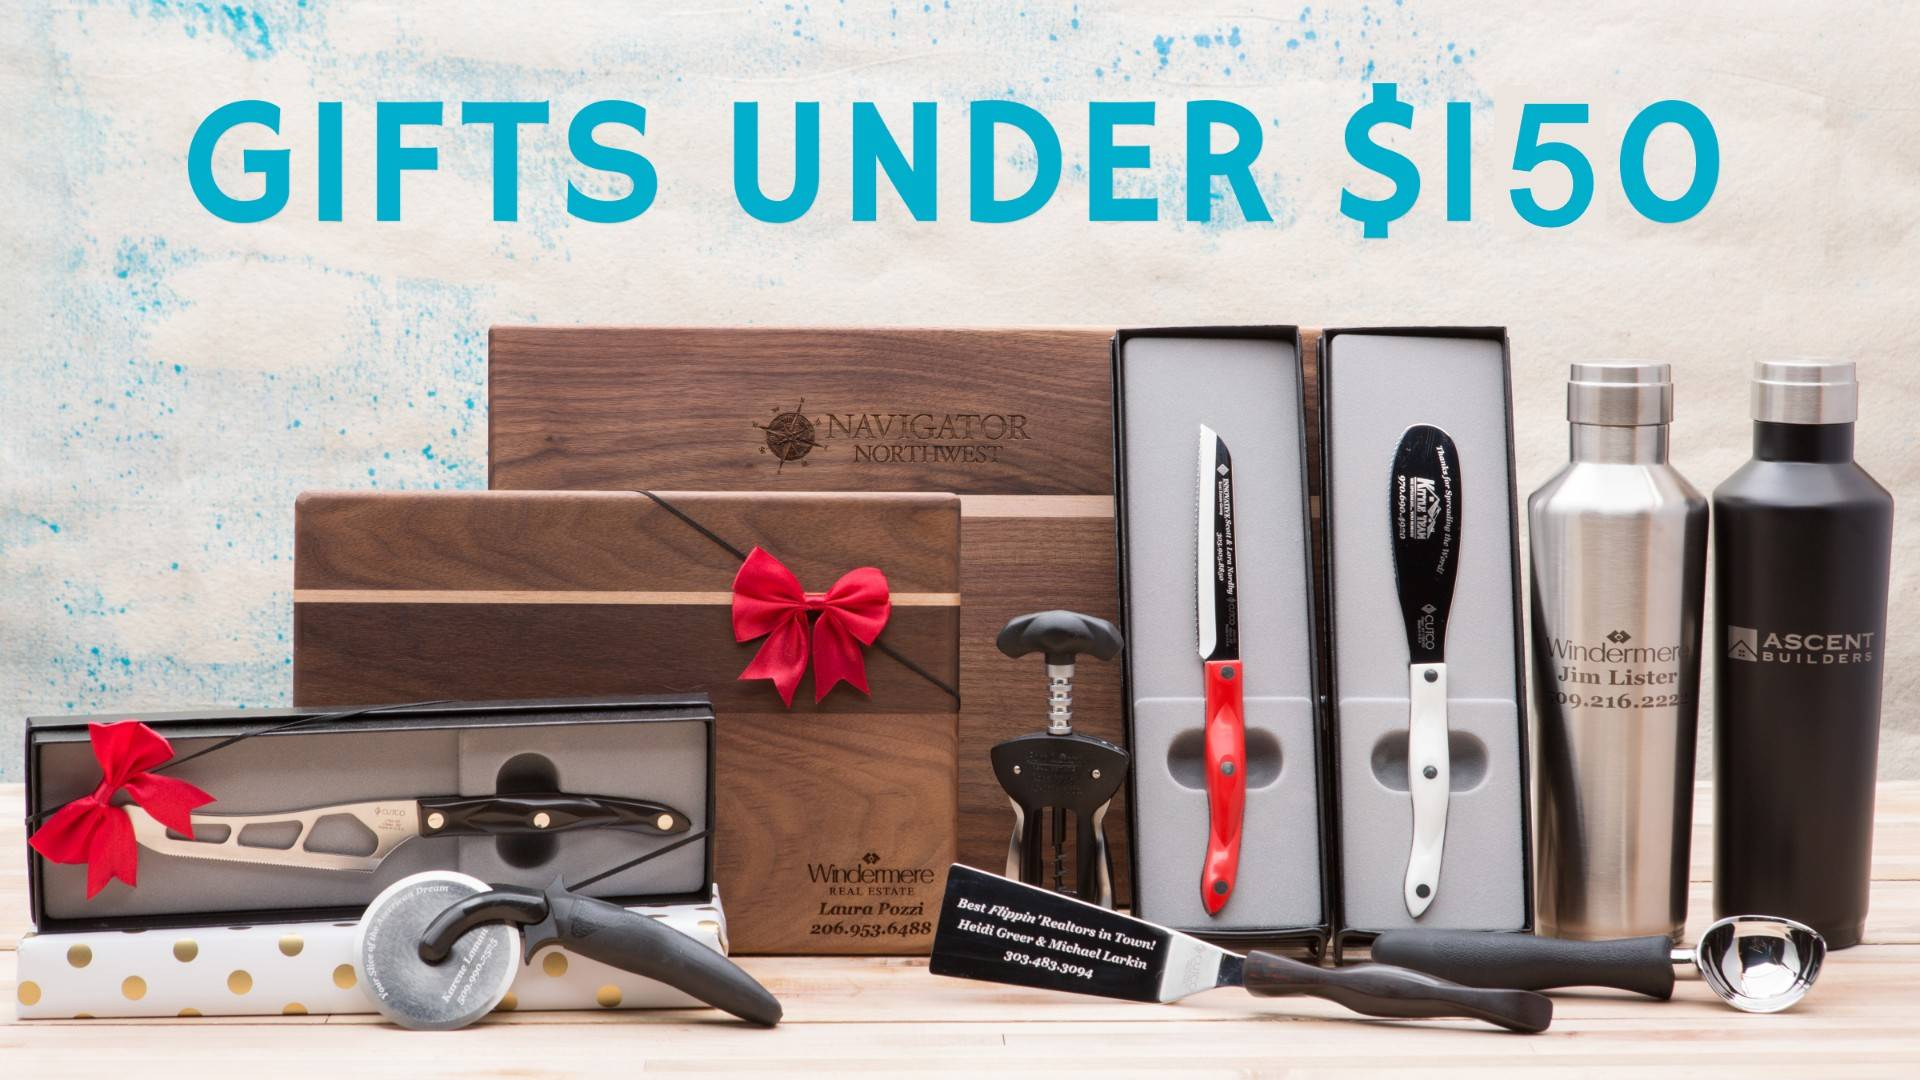 Branded client gits closing gifts Under $150